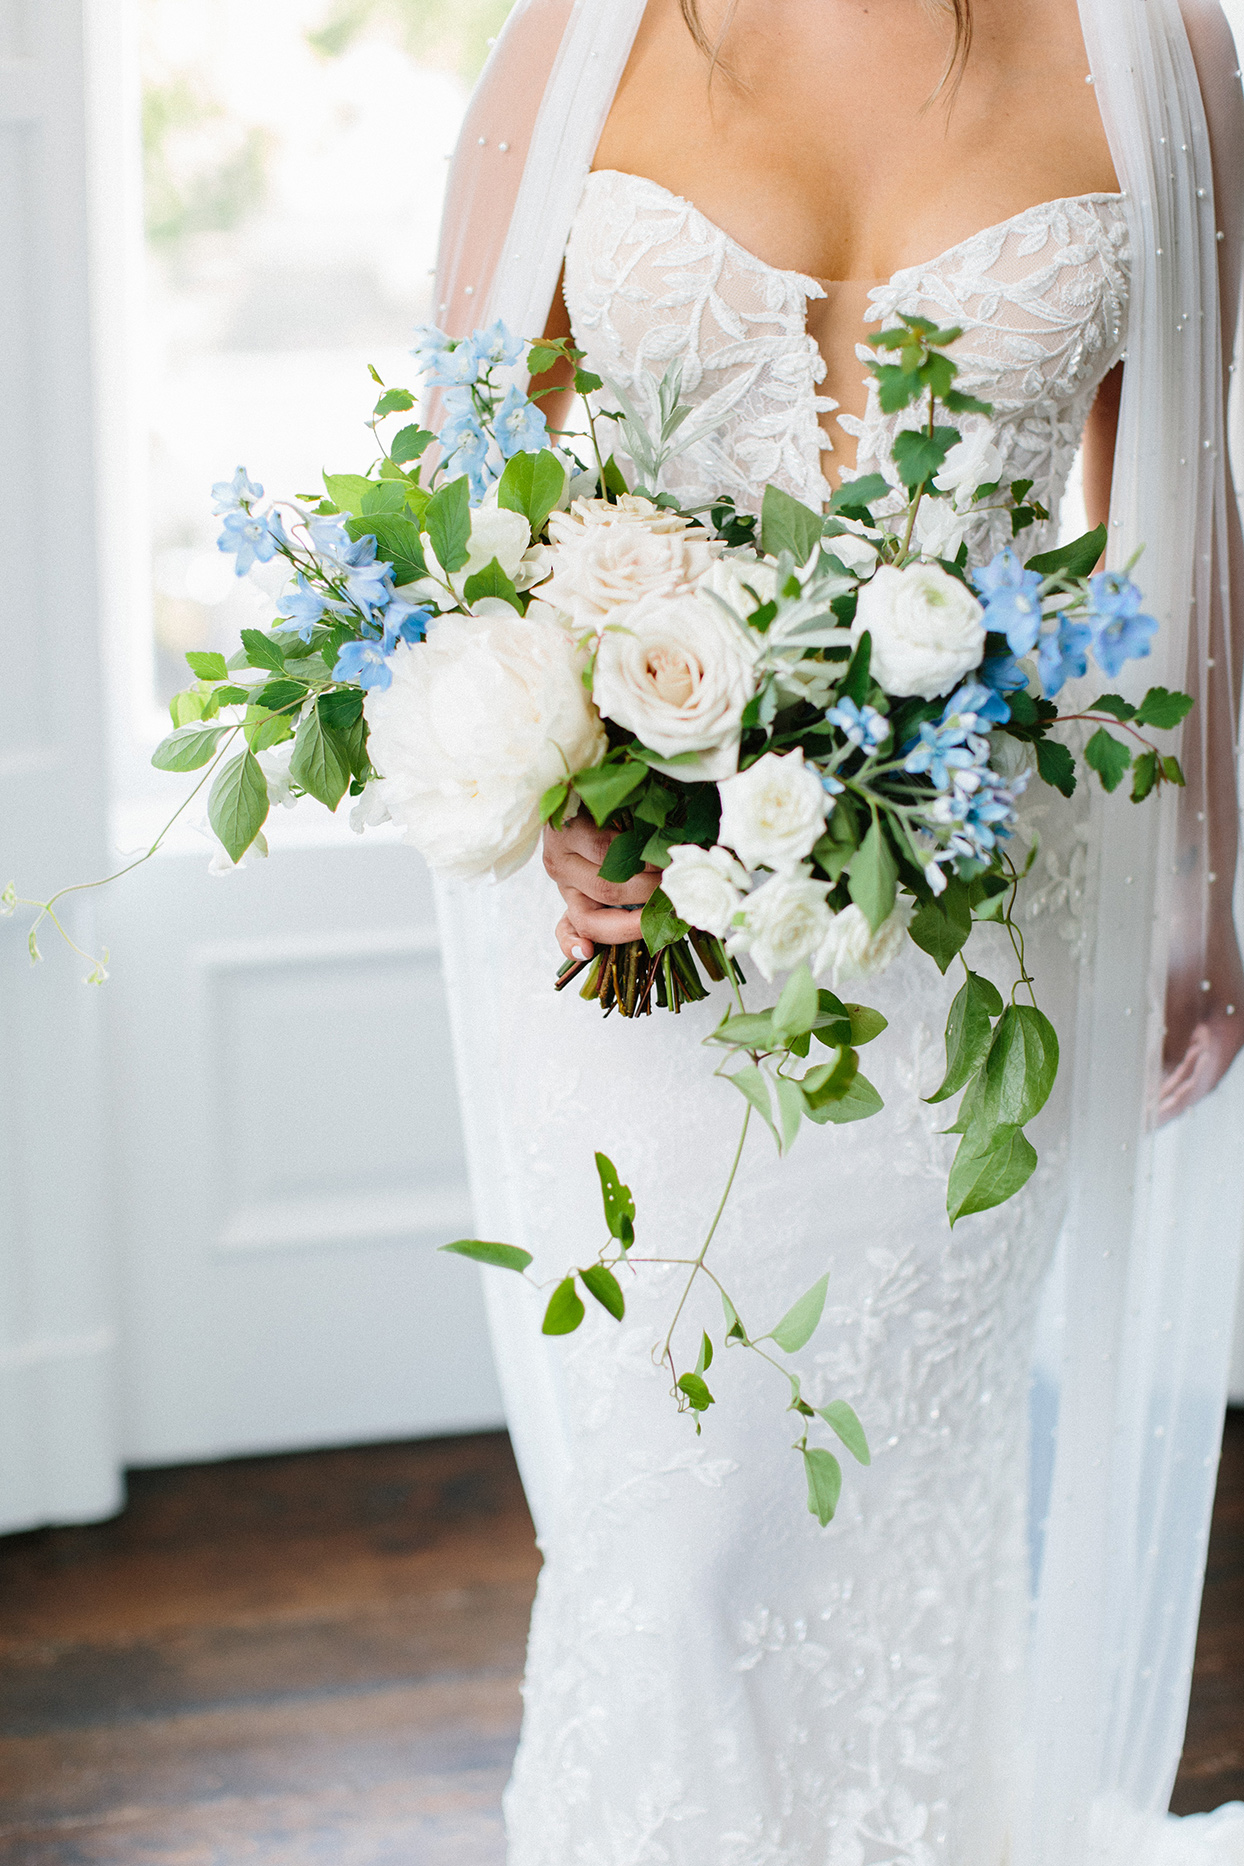 bride holding white and blue floral wedding bouquet with greenery